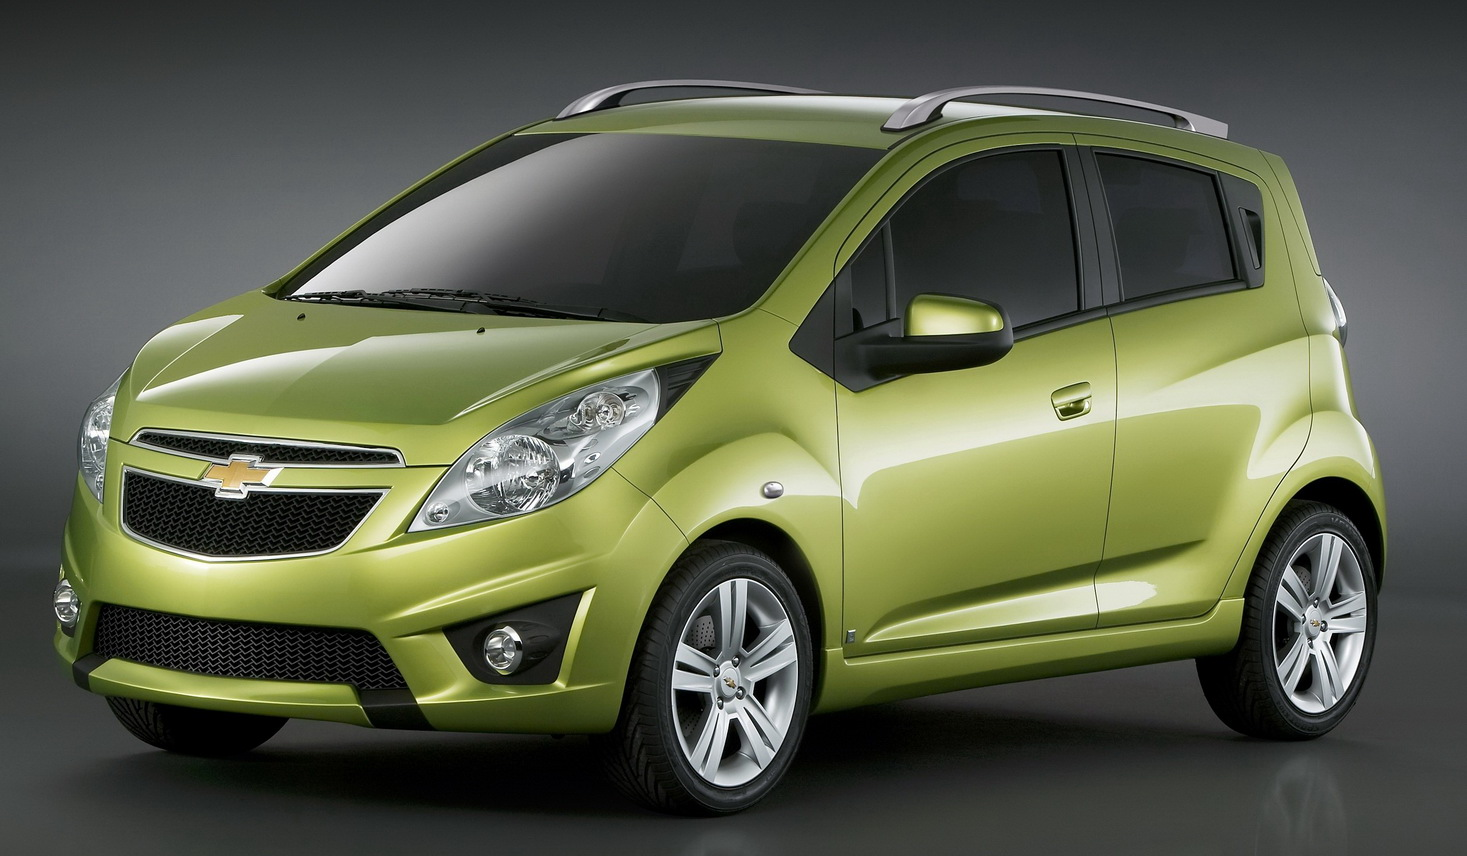 Chevrolet beat 2010 photo - 2